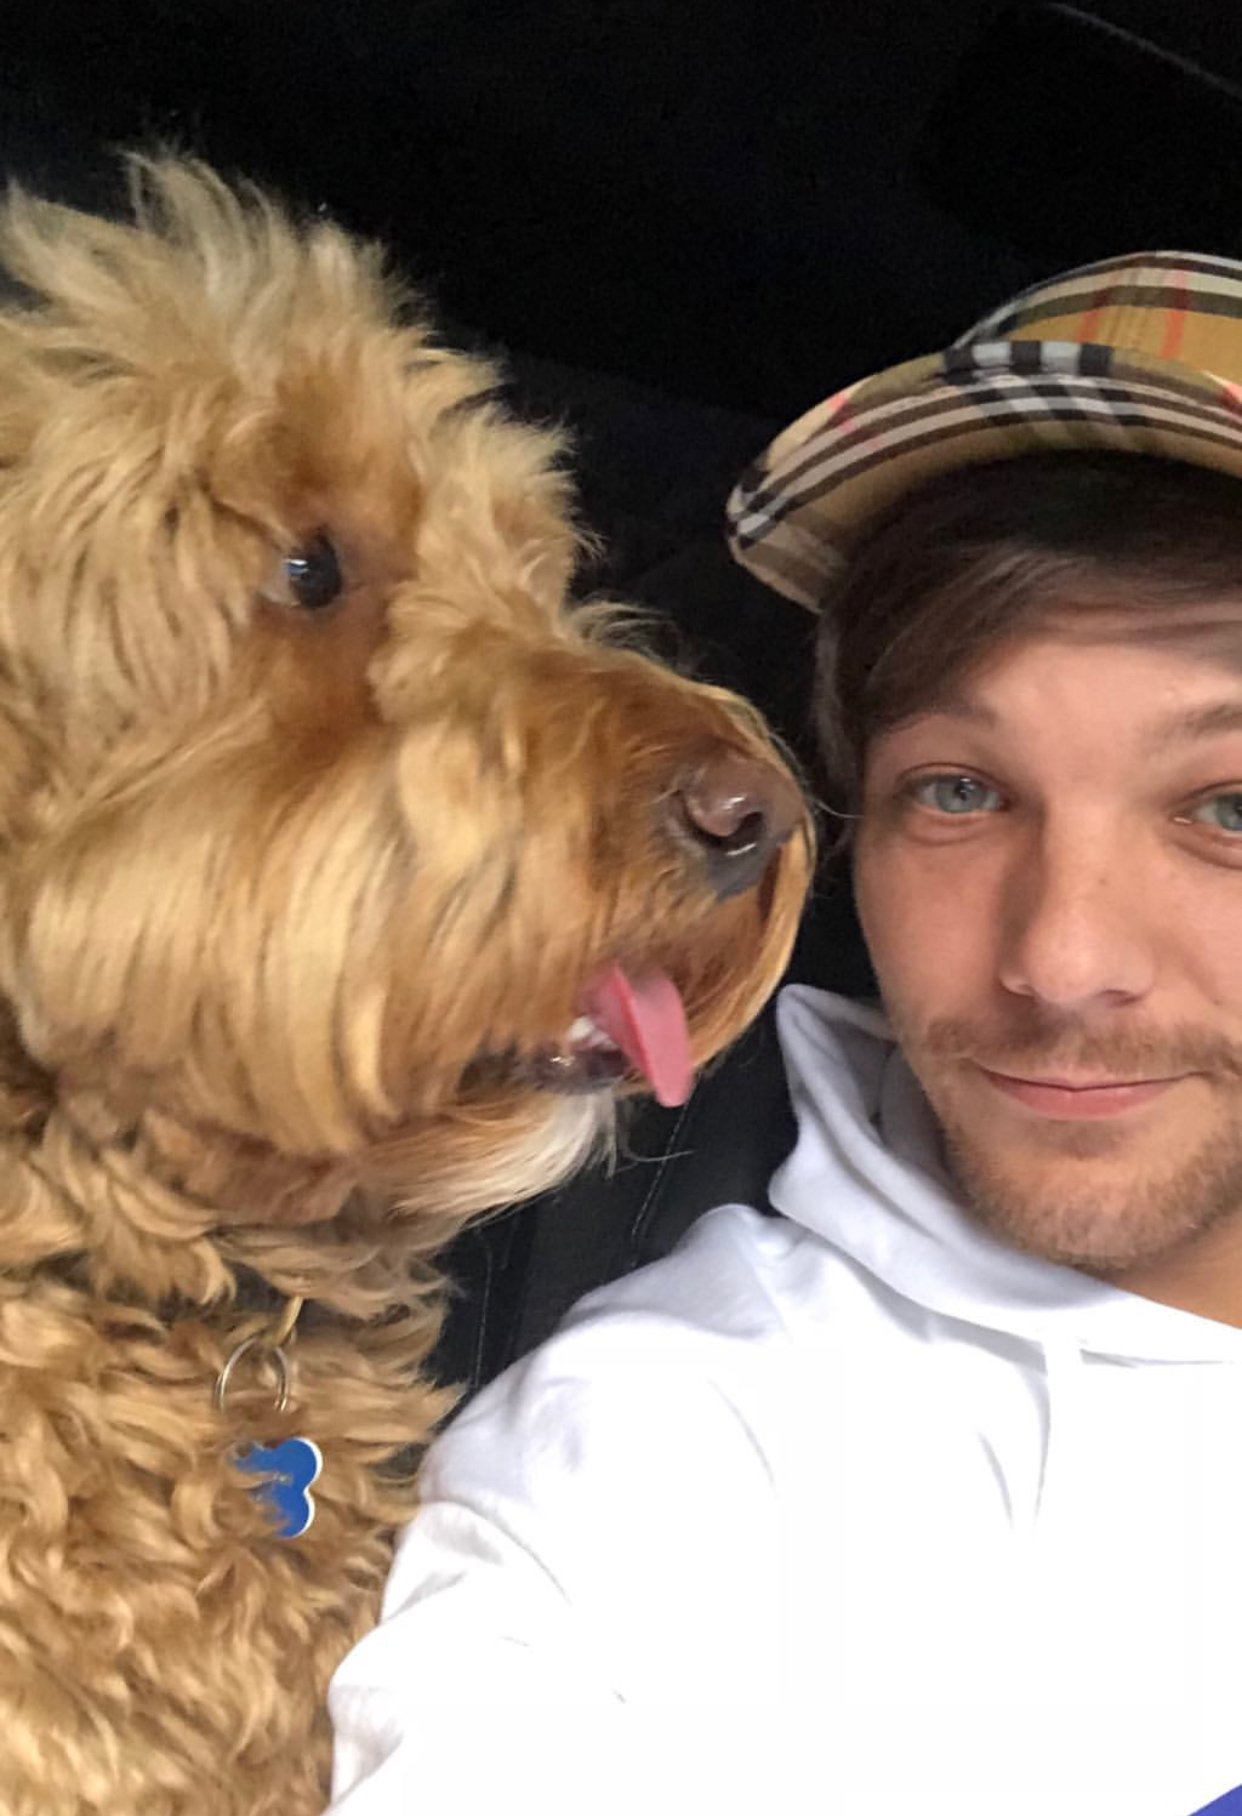 I hope @Louis_Tomlinson is having the best week ever �� https://t.co/OdQY6tot6O